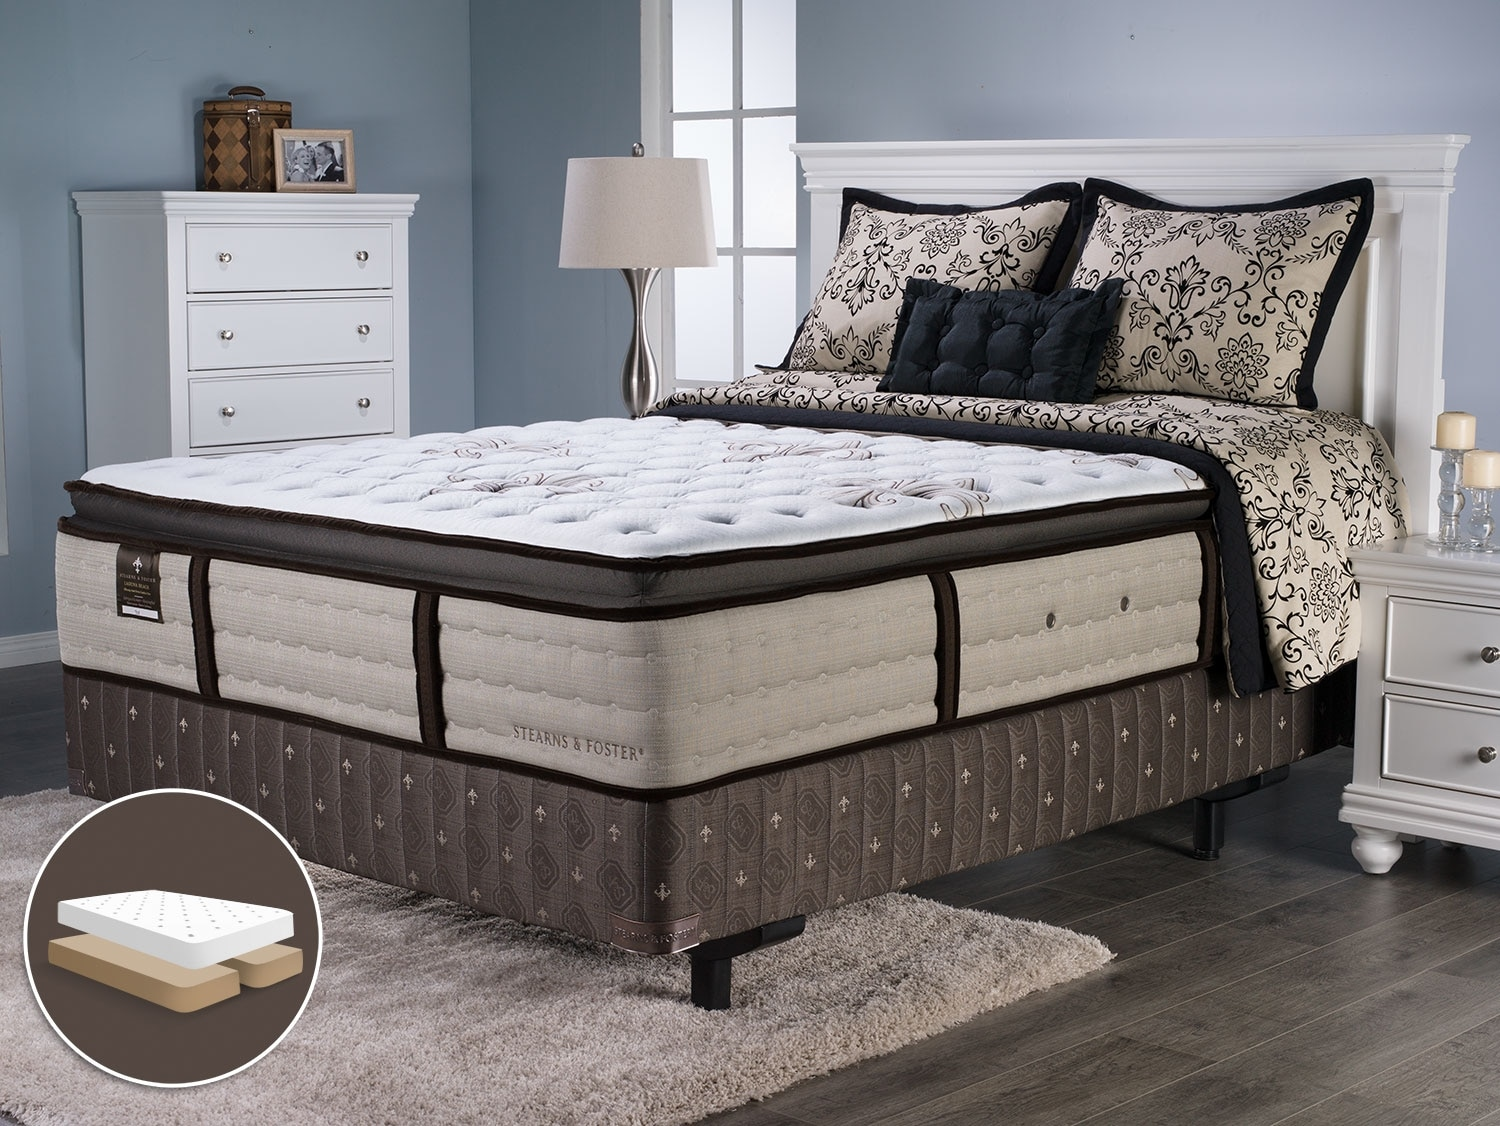 Mattresses and Bedding - Stearns and Foster Laguna Beach Pillow-Top Split Queen Mattress Set